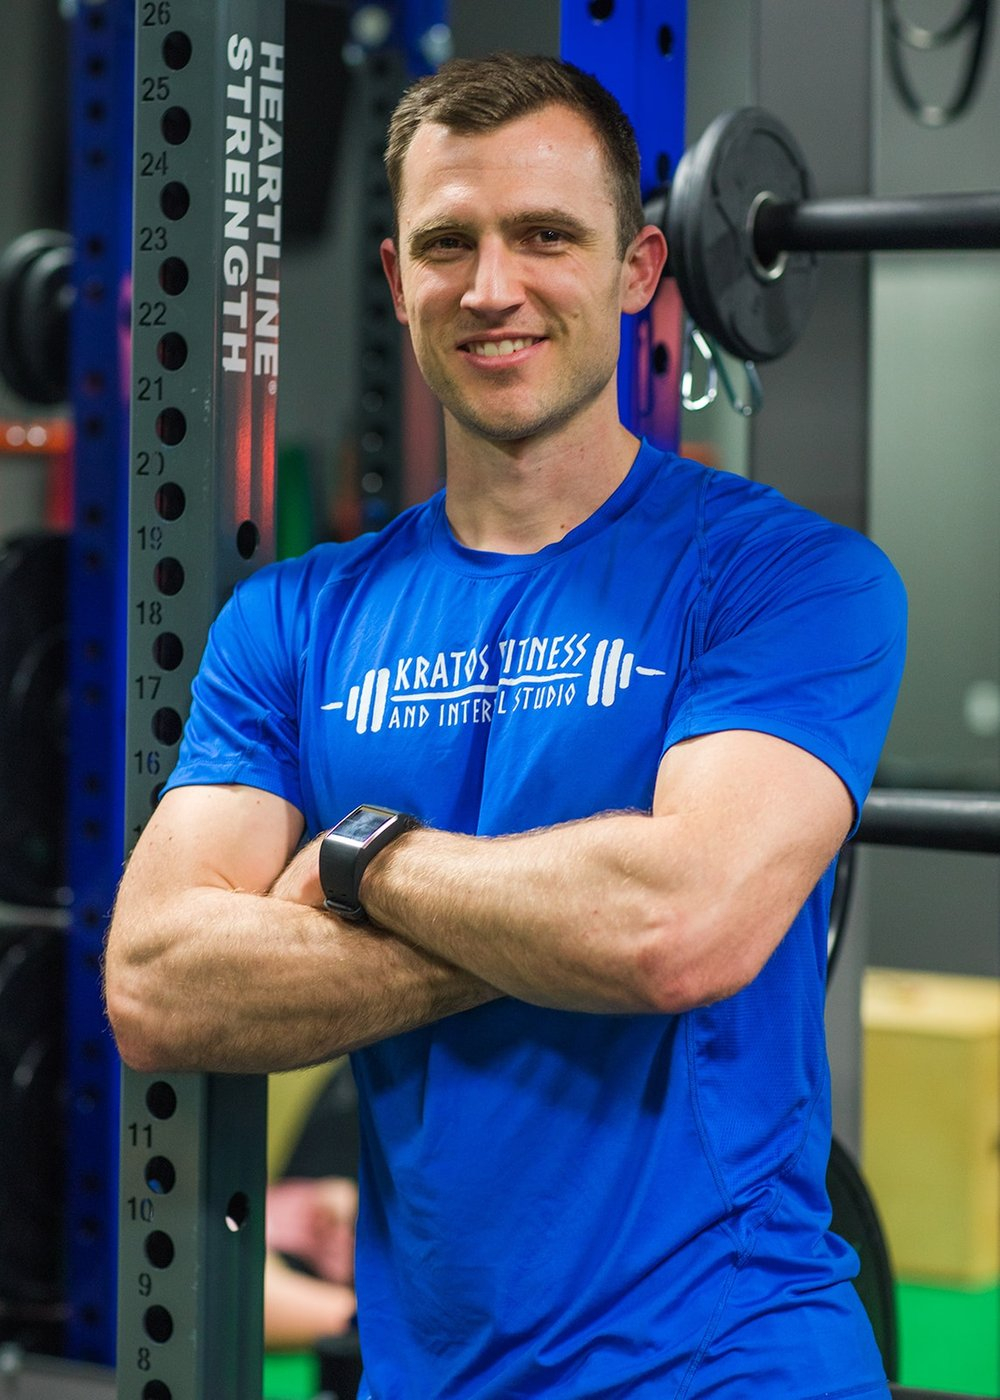 Tim Wamsley M.S., Owner/Trainer